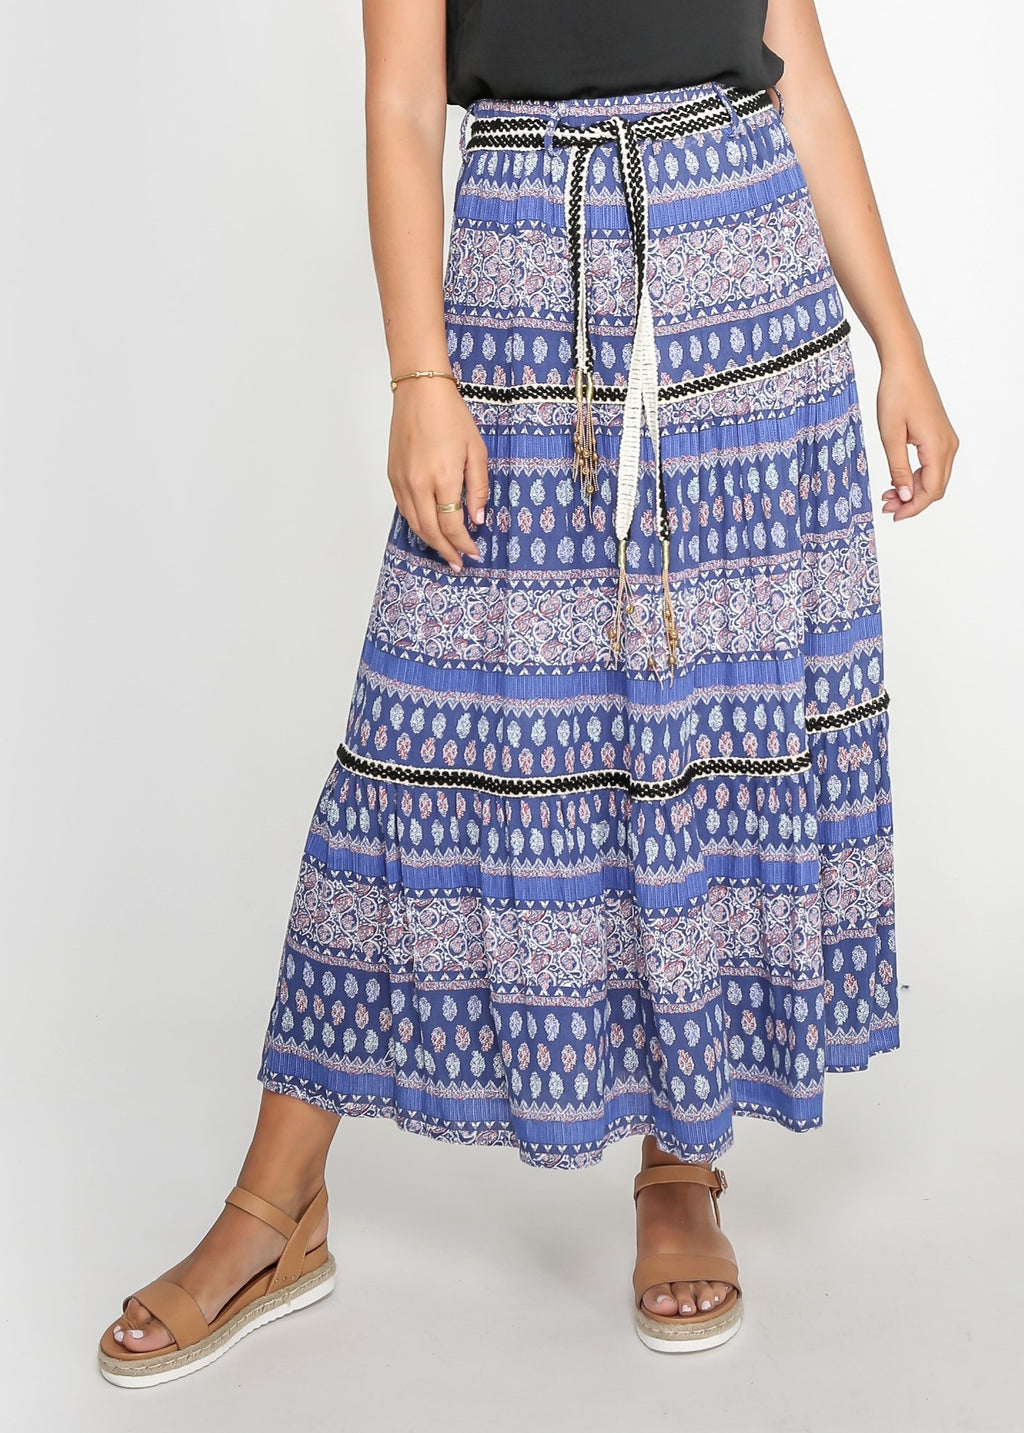 DIVA SKIRT - BOHO BLUE PRINT - MARK DOWN MADNESS